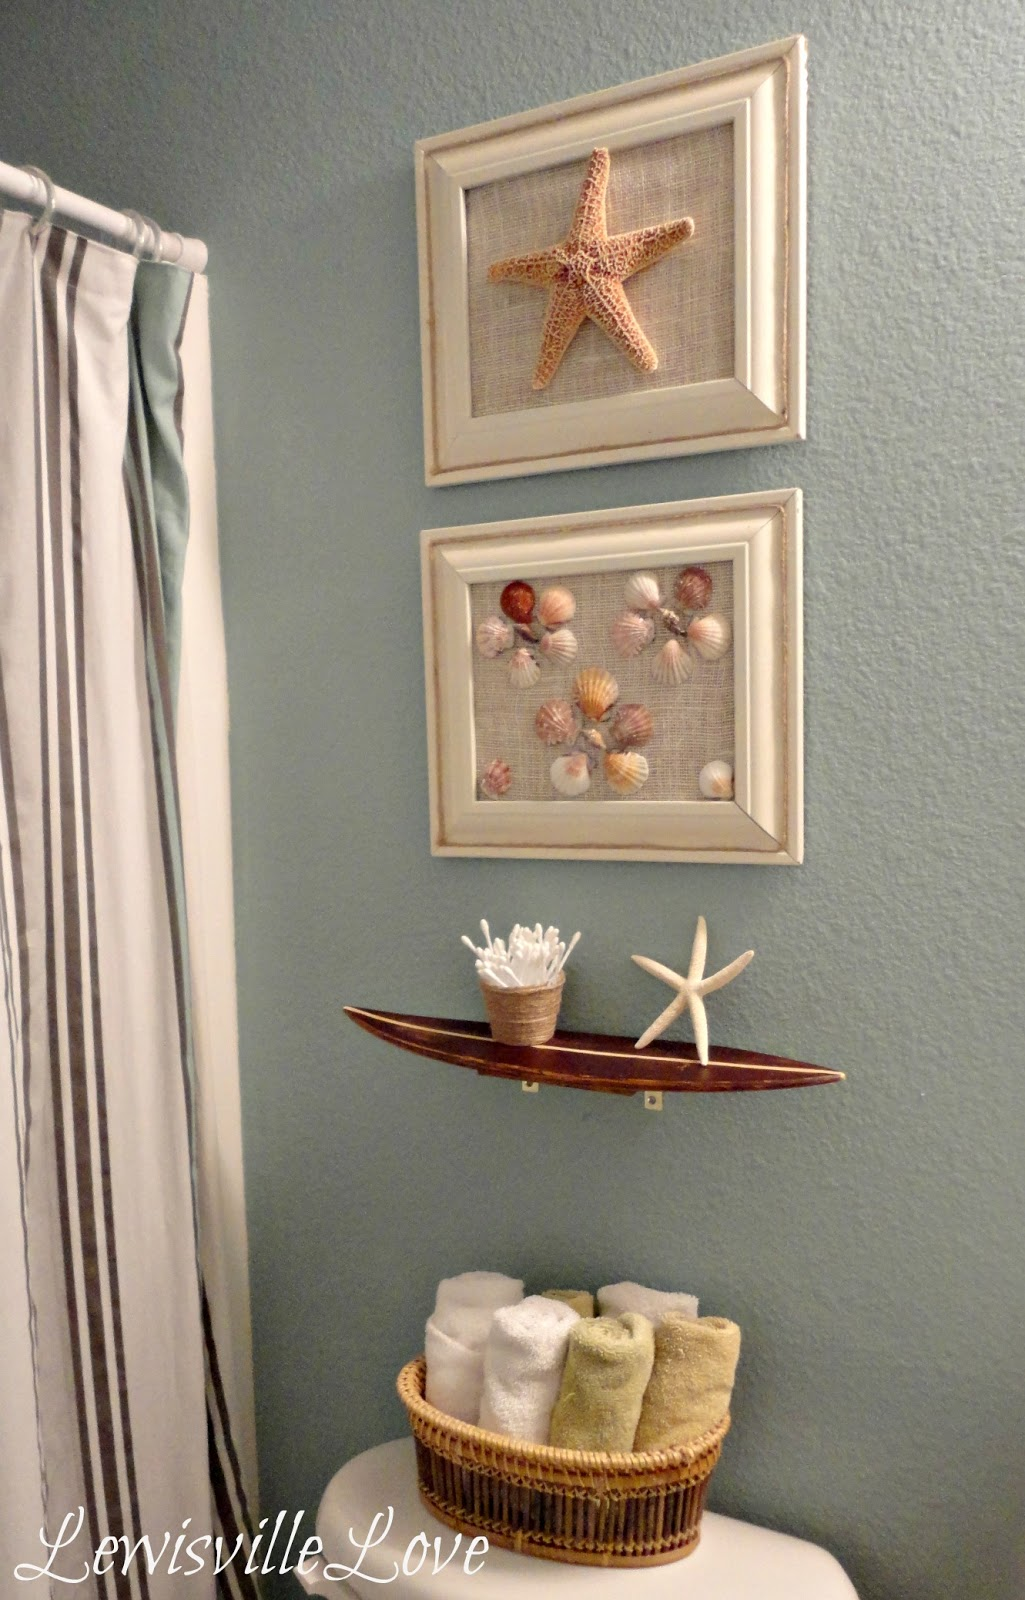 Lewisville love beach theme bathroom reveal for Beach themed bathroom sets